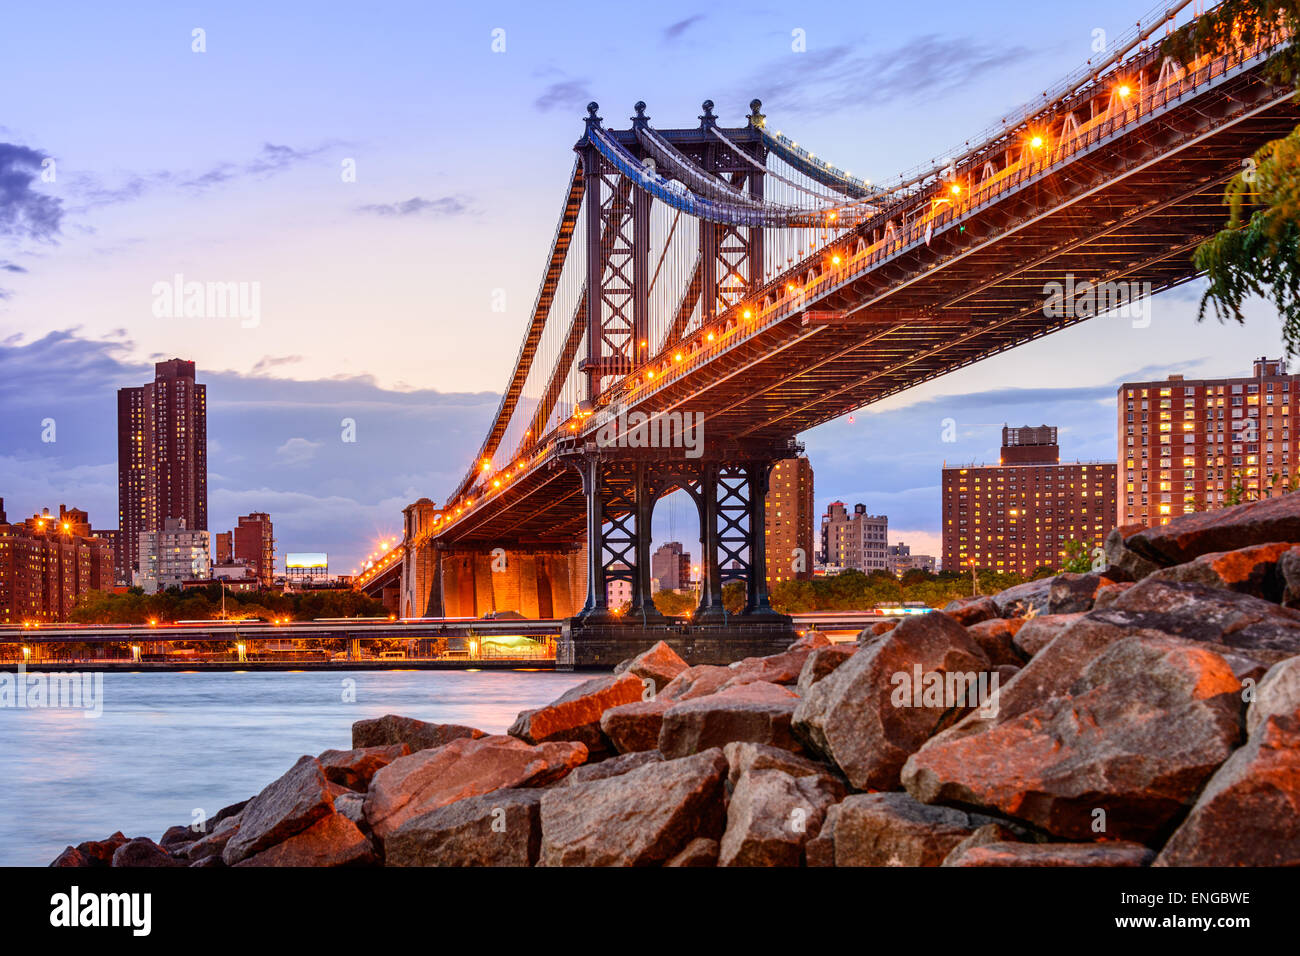 New York City, USA at the Manhattan Bridge spanning the East River. - Stock Image